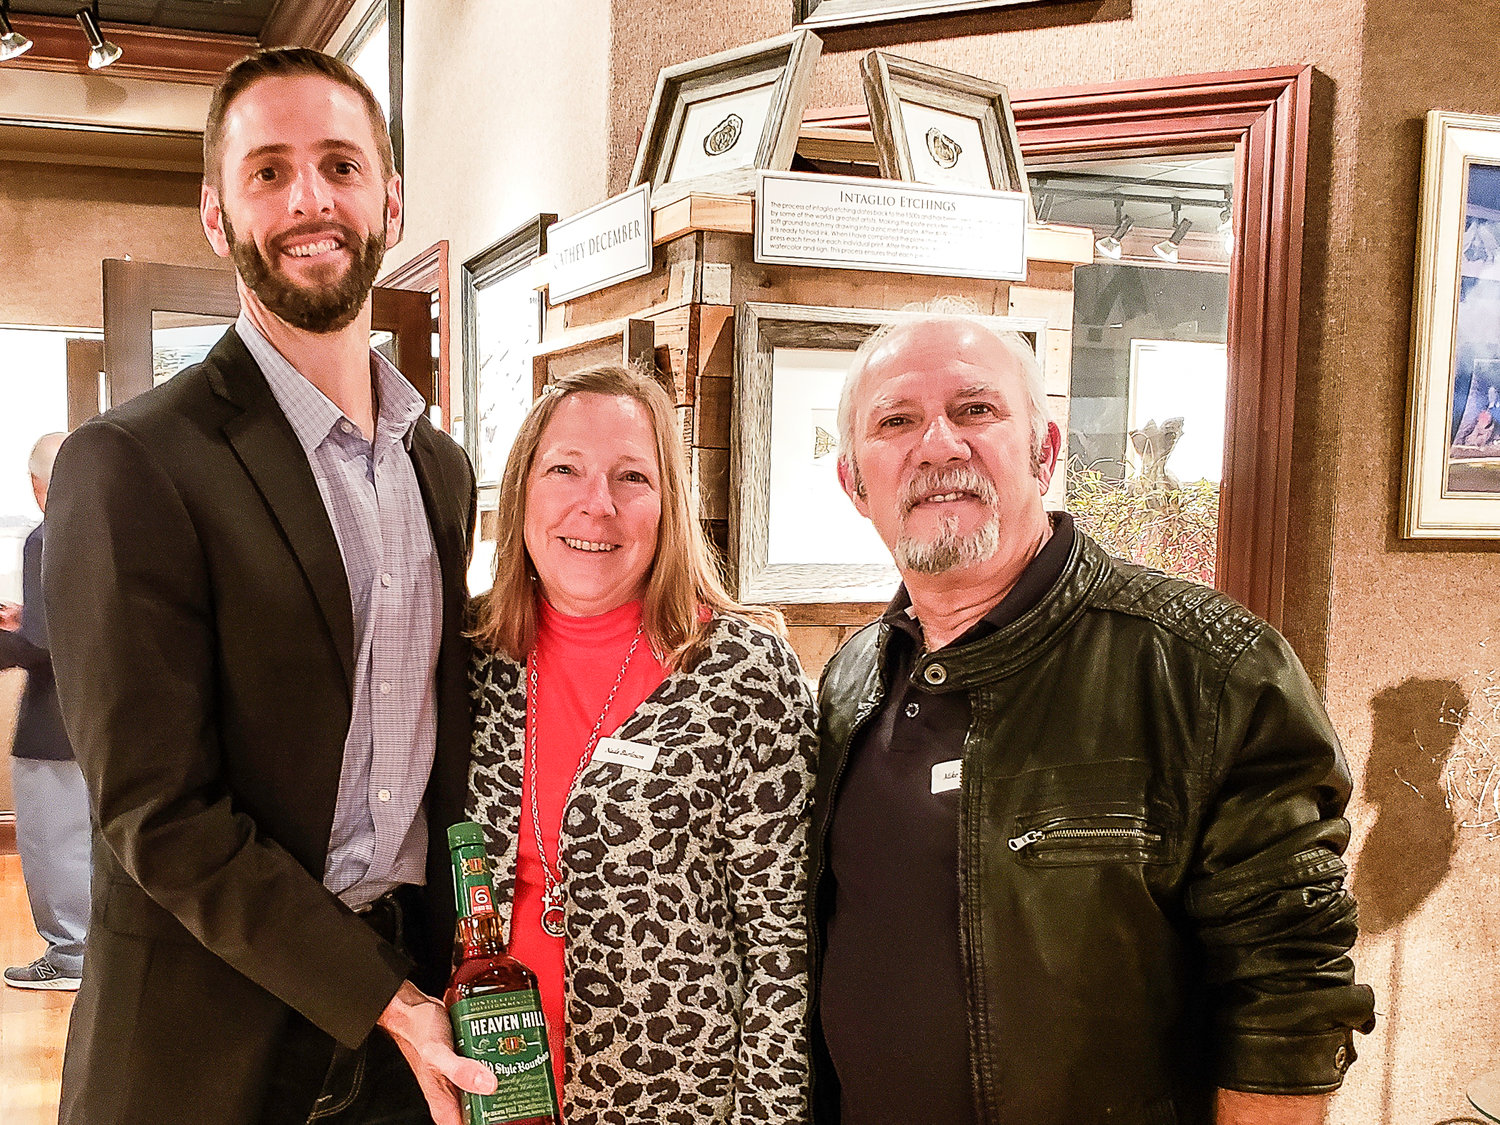 Nada and Michael Burleson met local artist Matthew Cutter, far left, about three years ago and began collecting his work. The couple  attended the Dec. 6, 2019 artist's reception at Cutter & Cutter Fine Art in St. Augustine.